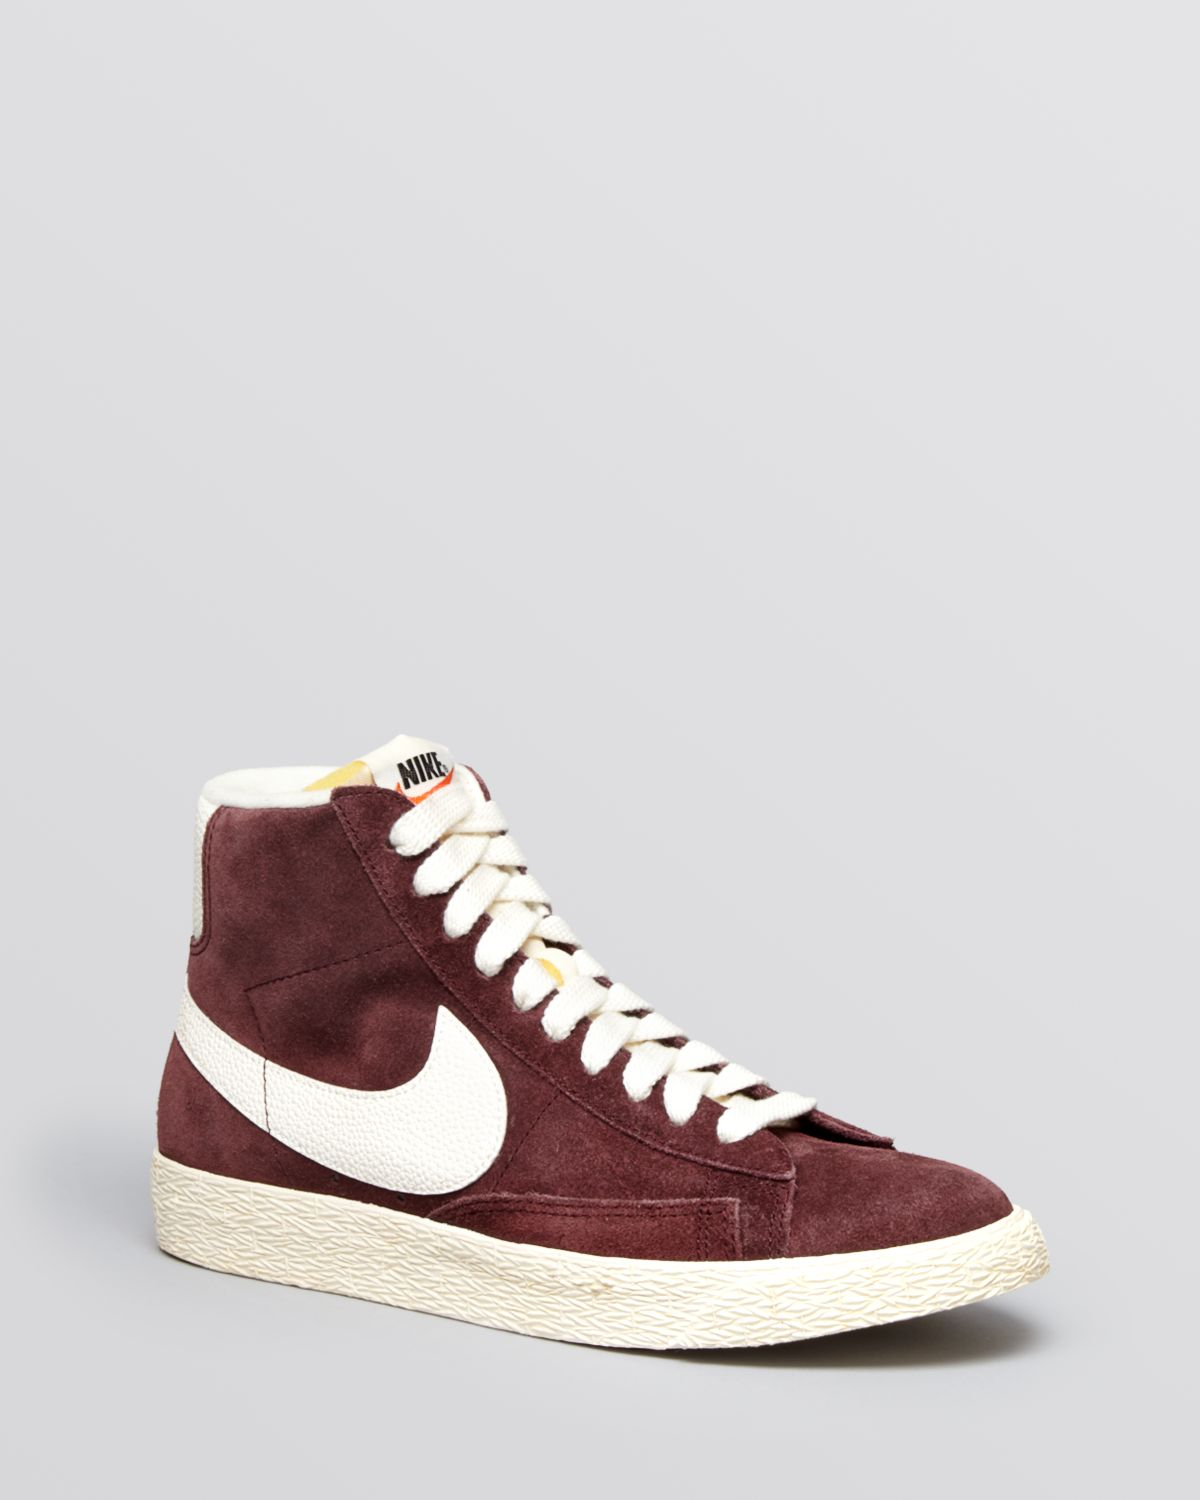 Lyst - Nike Lace Up High Top Sneakers - Women S Vintage Suede Mid ... 2aa11f4e9